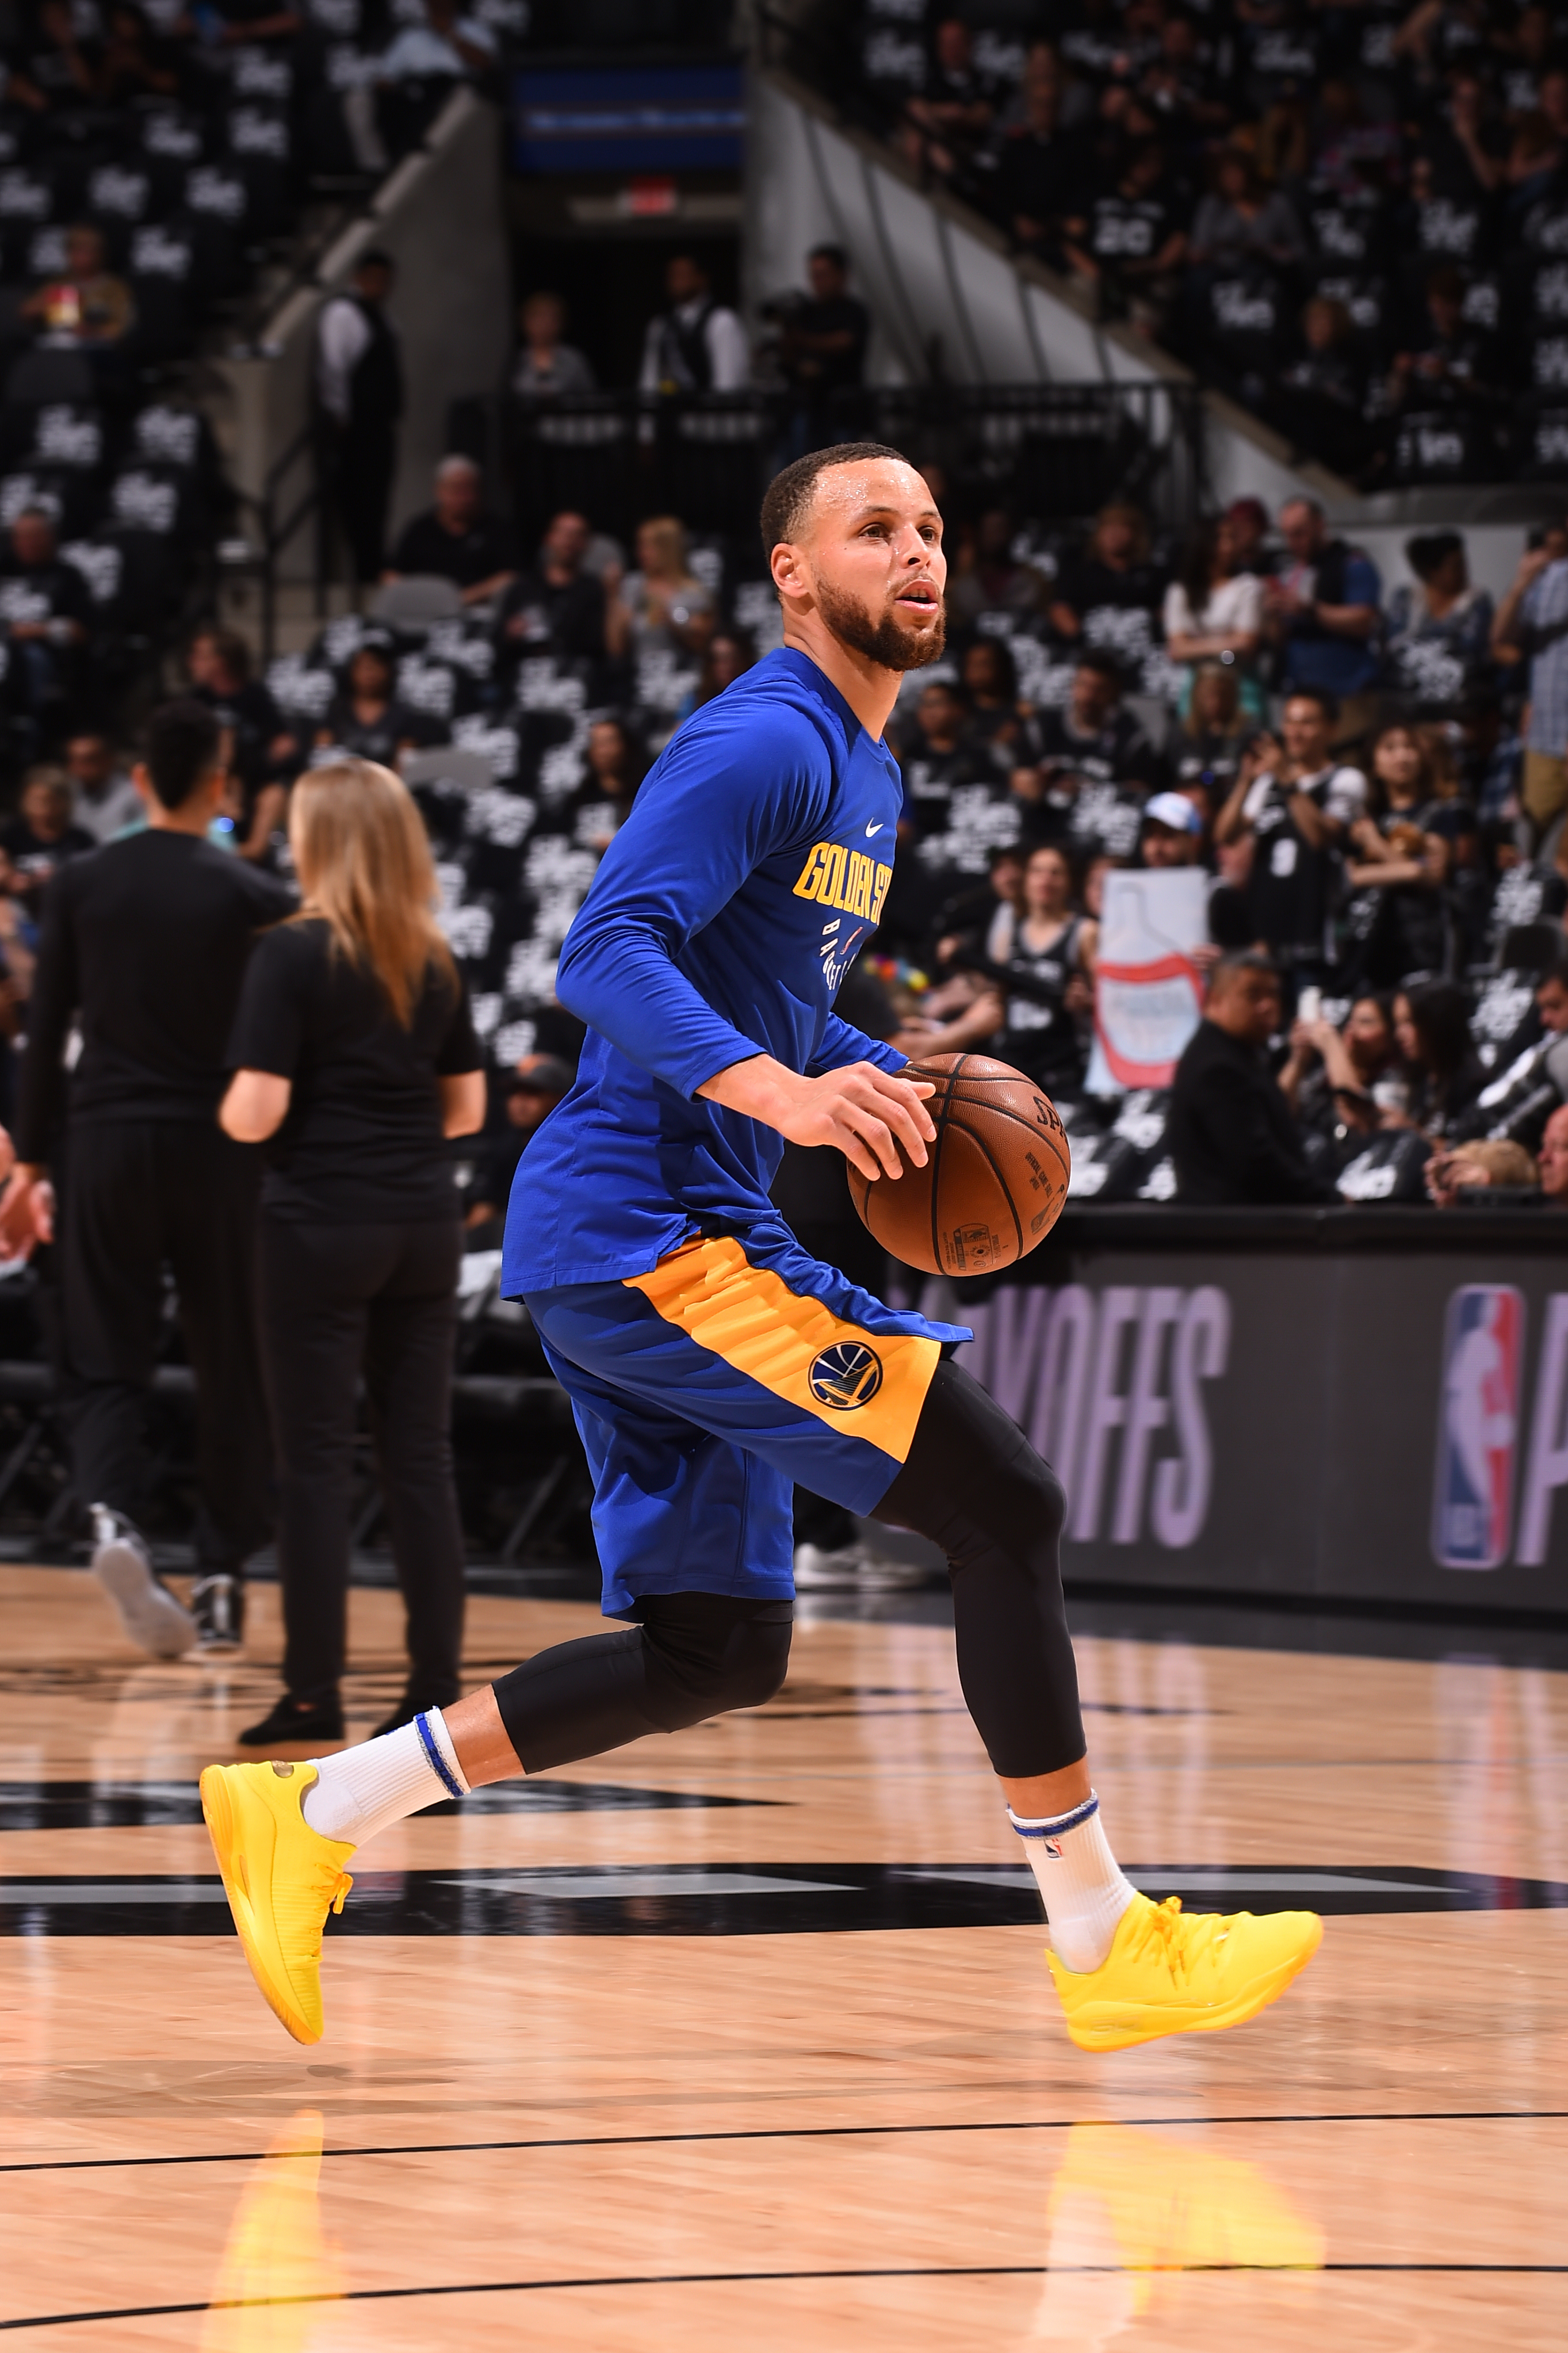 coach steve kerr says stephen curry will not play anytime soon